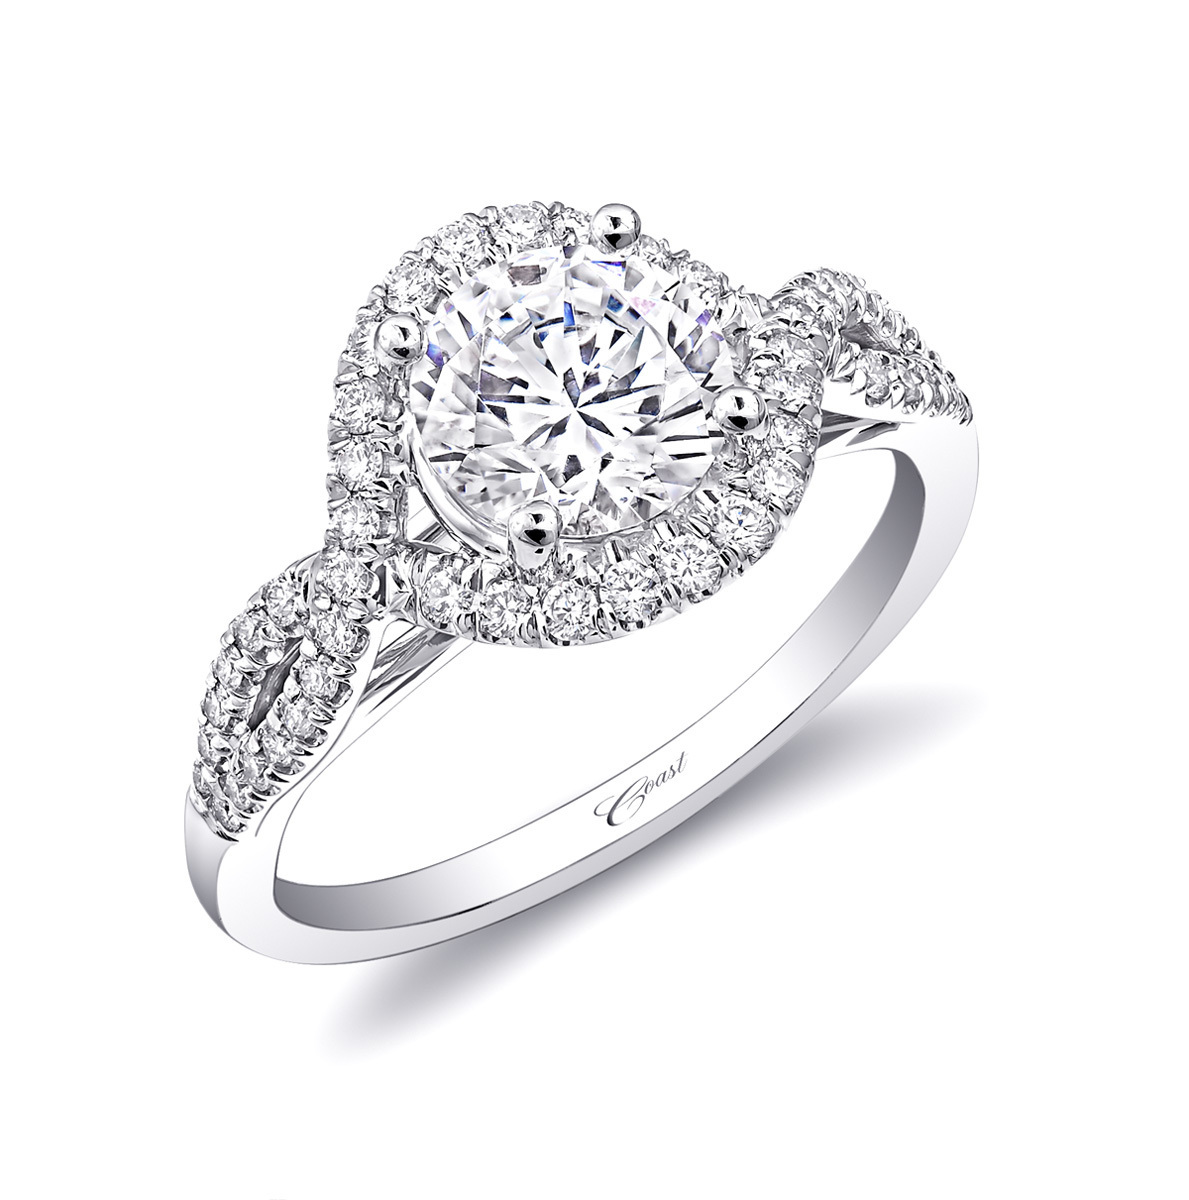 Charisma Engagement Ring - Unique Twist Design